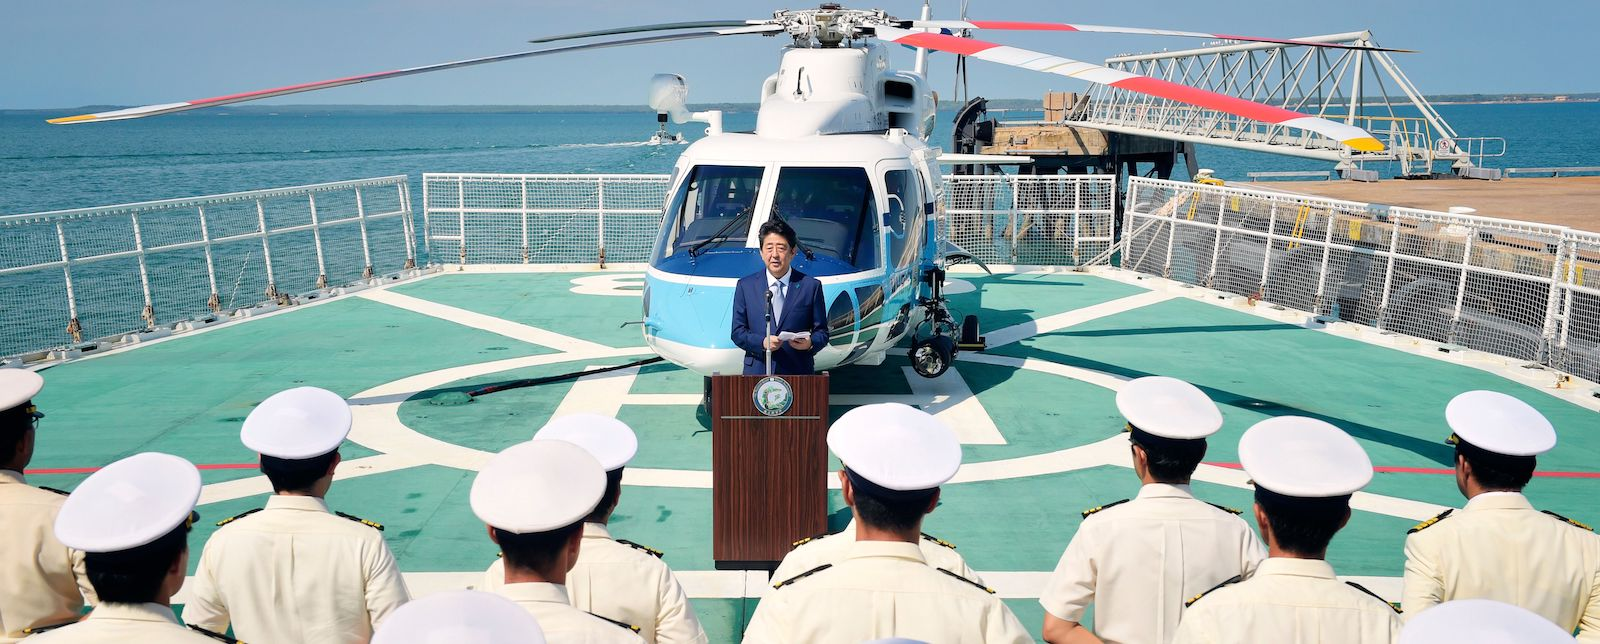 Japan's Prime Minister Shinzo Abe addresses sailors during a ship tour at Fort Hill Wharf in Darwin. (Photo: Michael Franchi/AFP/Getty)